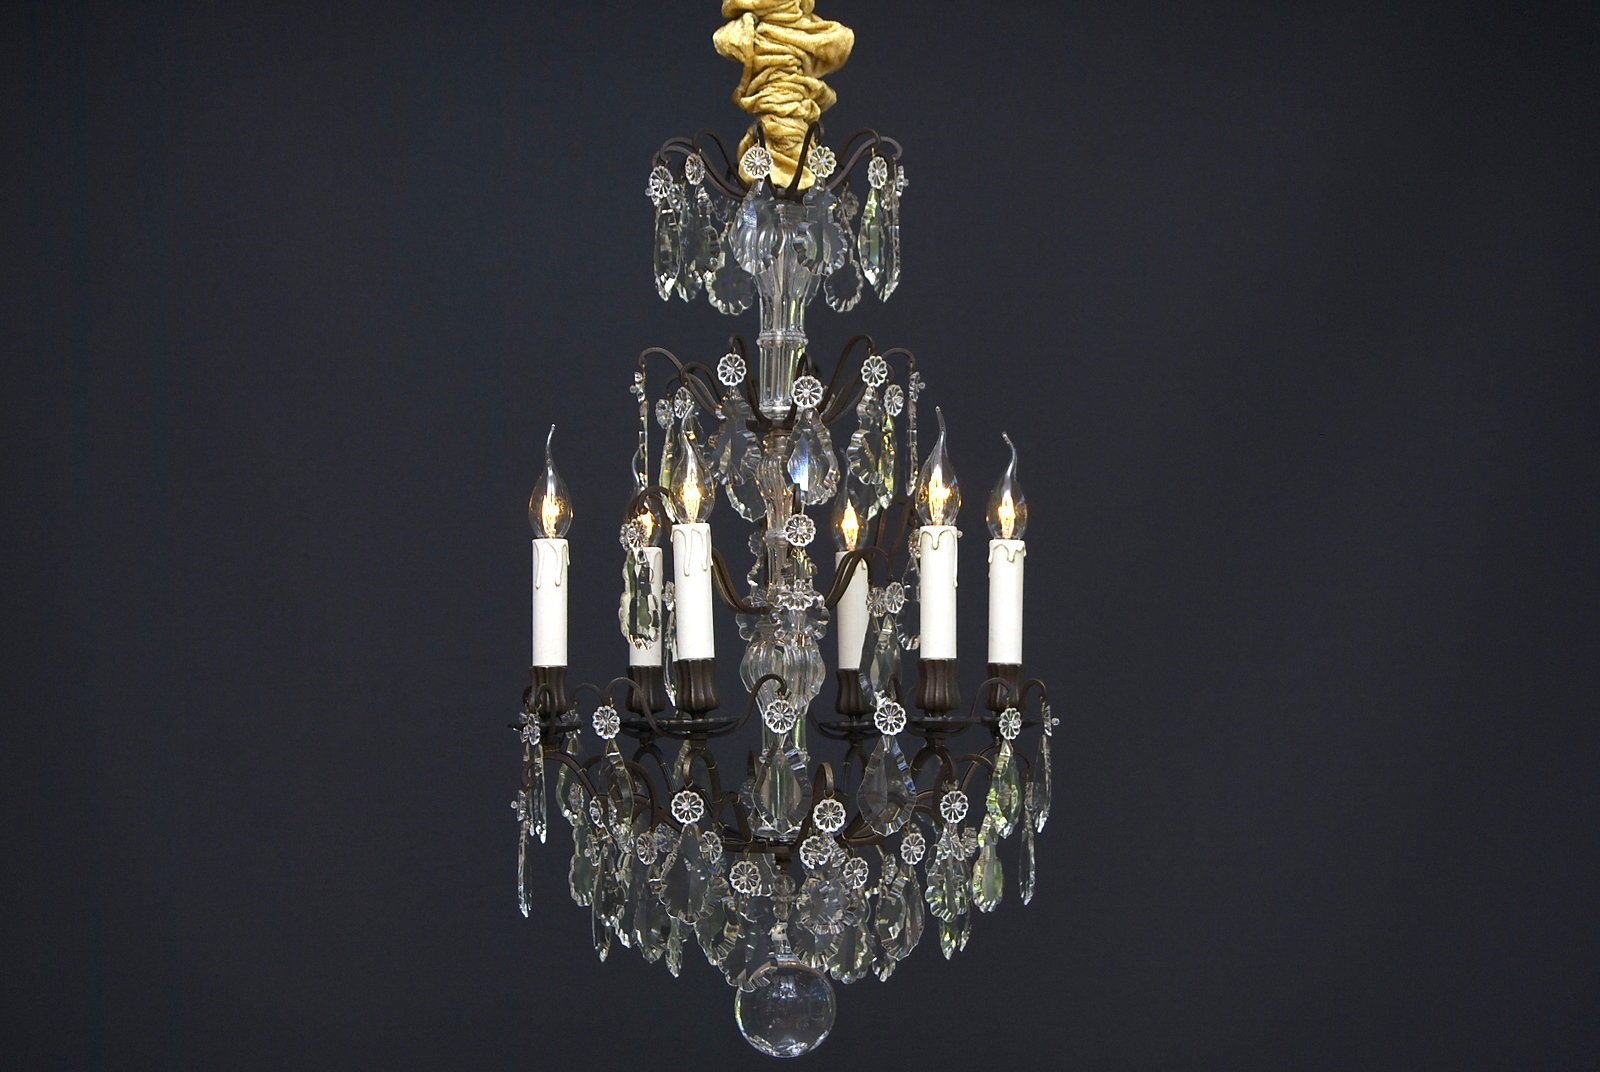 A 19th century French crystal chandelier with 6 light